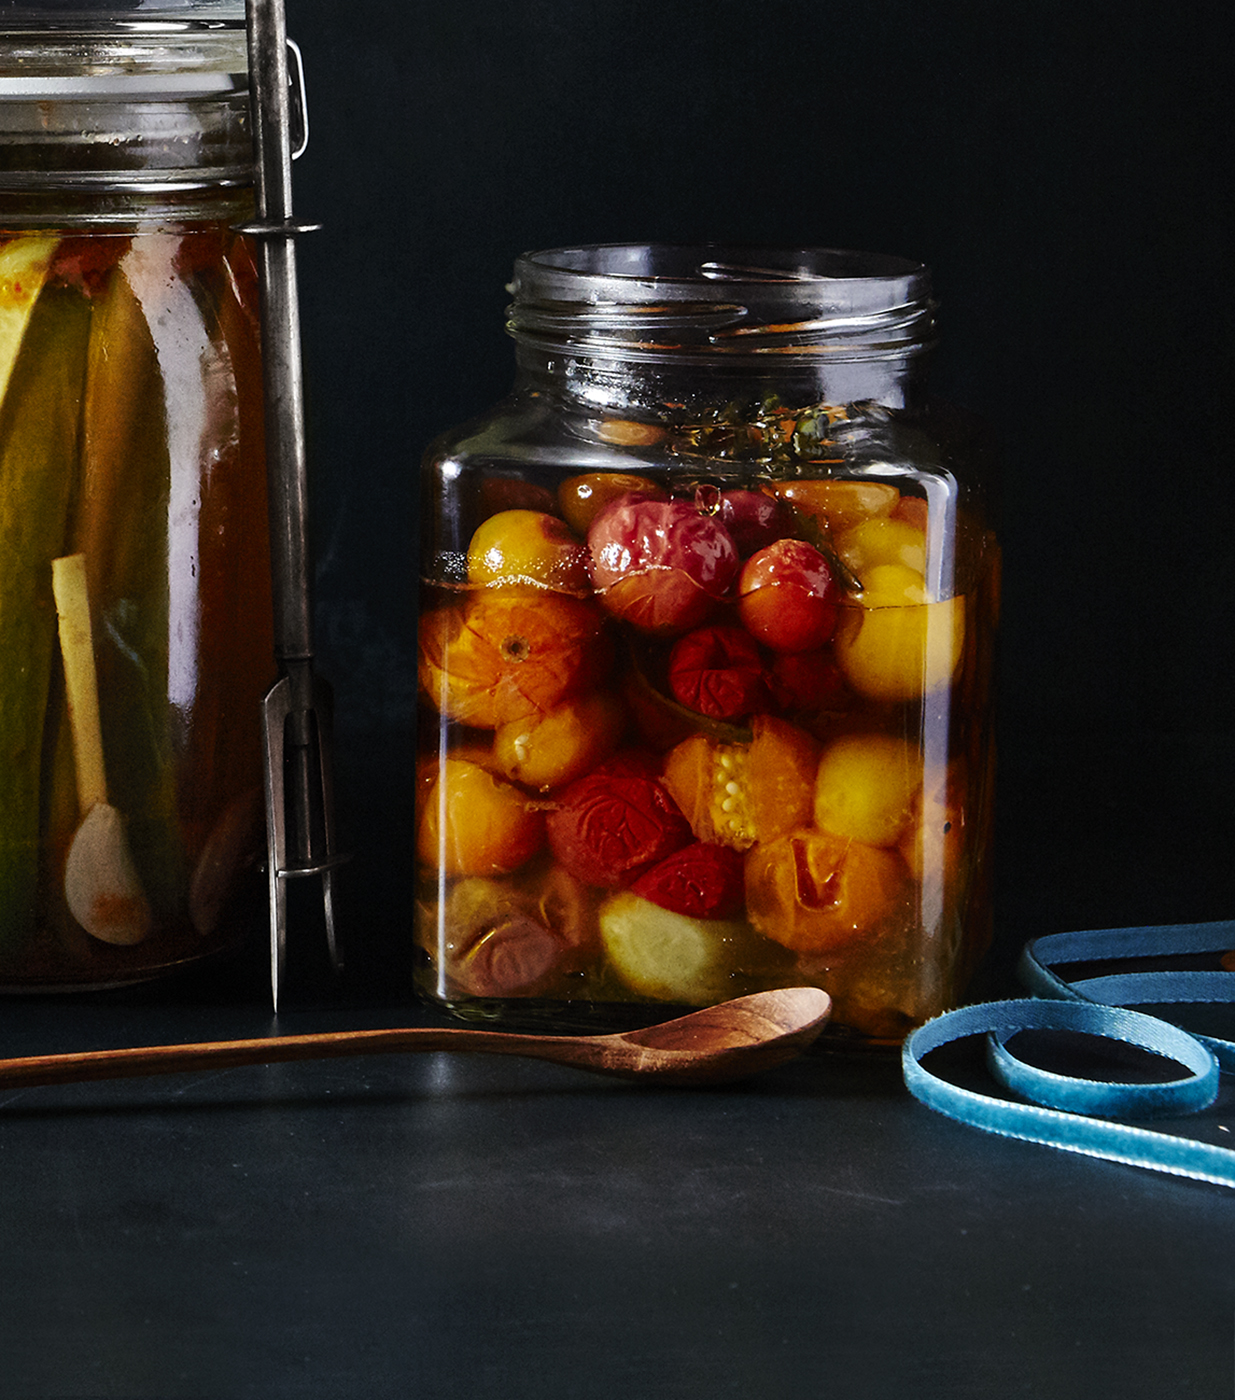 homemade food gift recipes - Slow-Cooker Cherry Tomato Confit